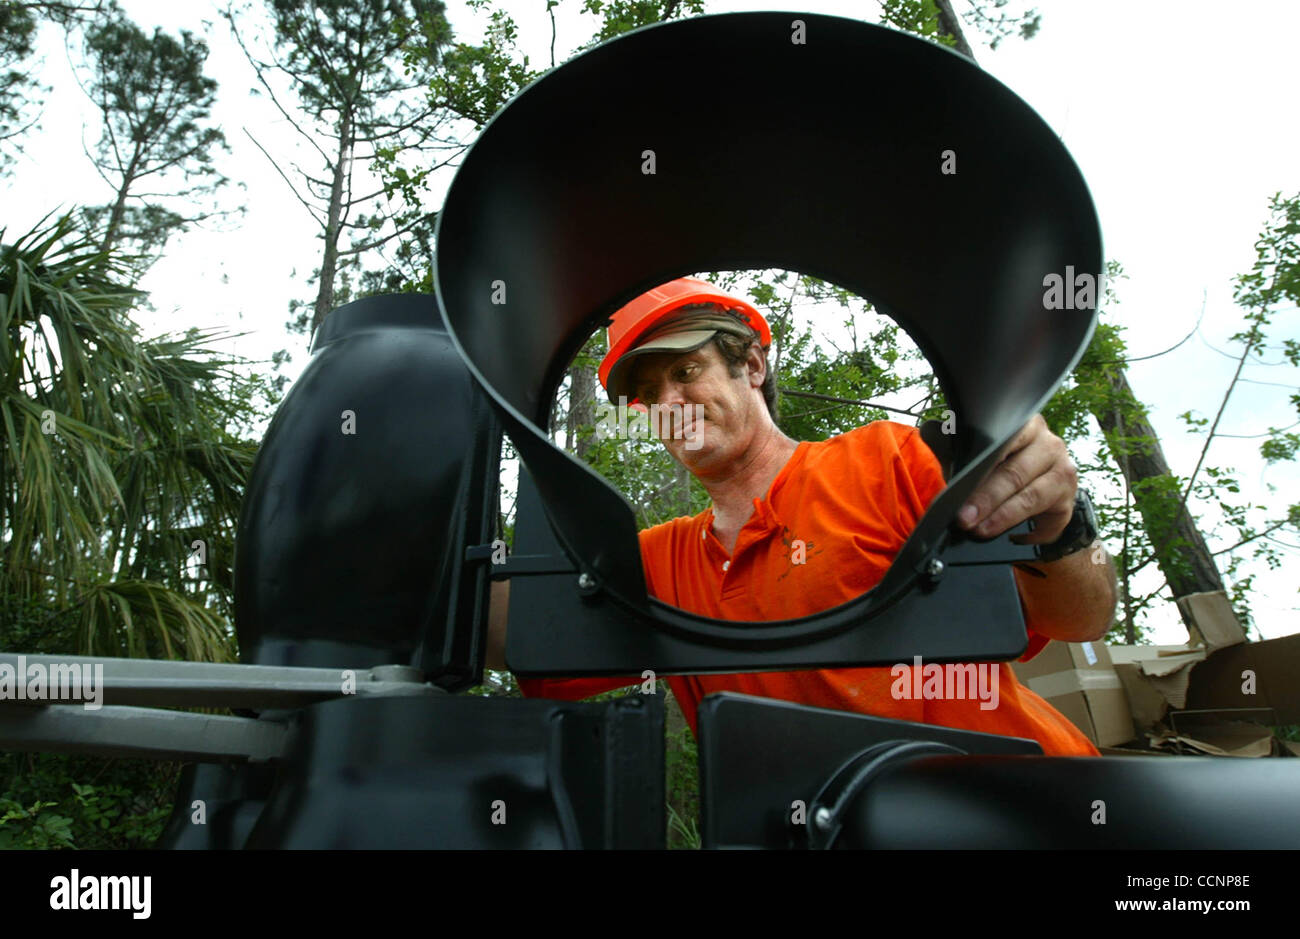 111704 TC MET Port St. Lucie...American Lighting & Signalization employee Phillip Perrier (cq) is framed by - Stock Image